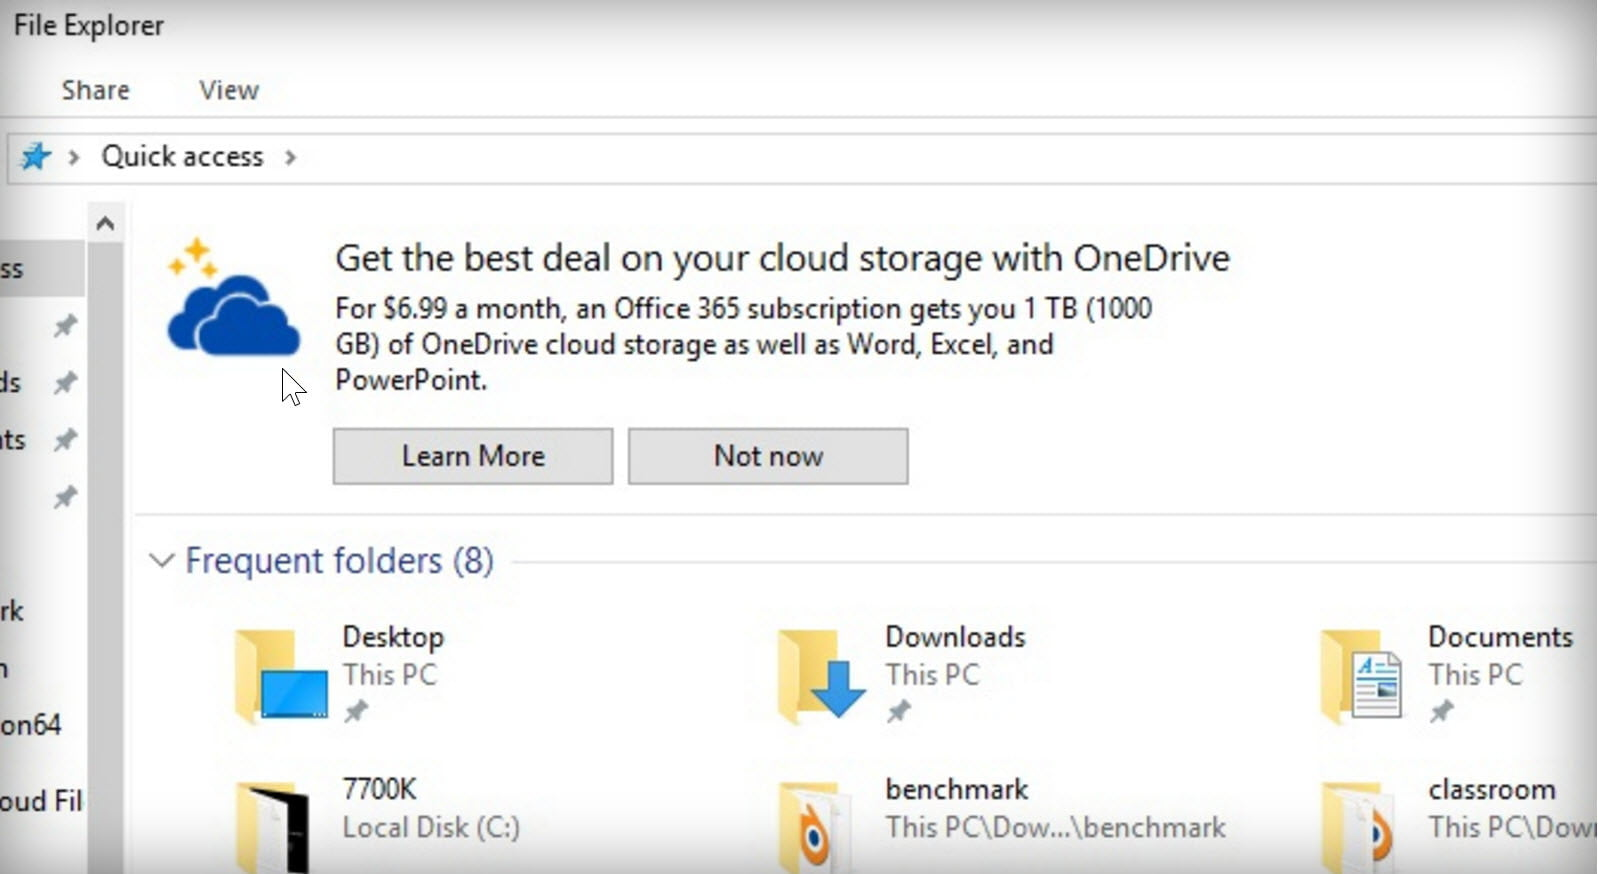 Microsoft is spamming Windows 10 File Explorer with OneDrive